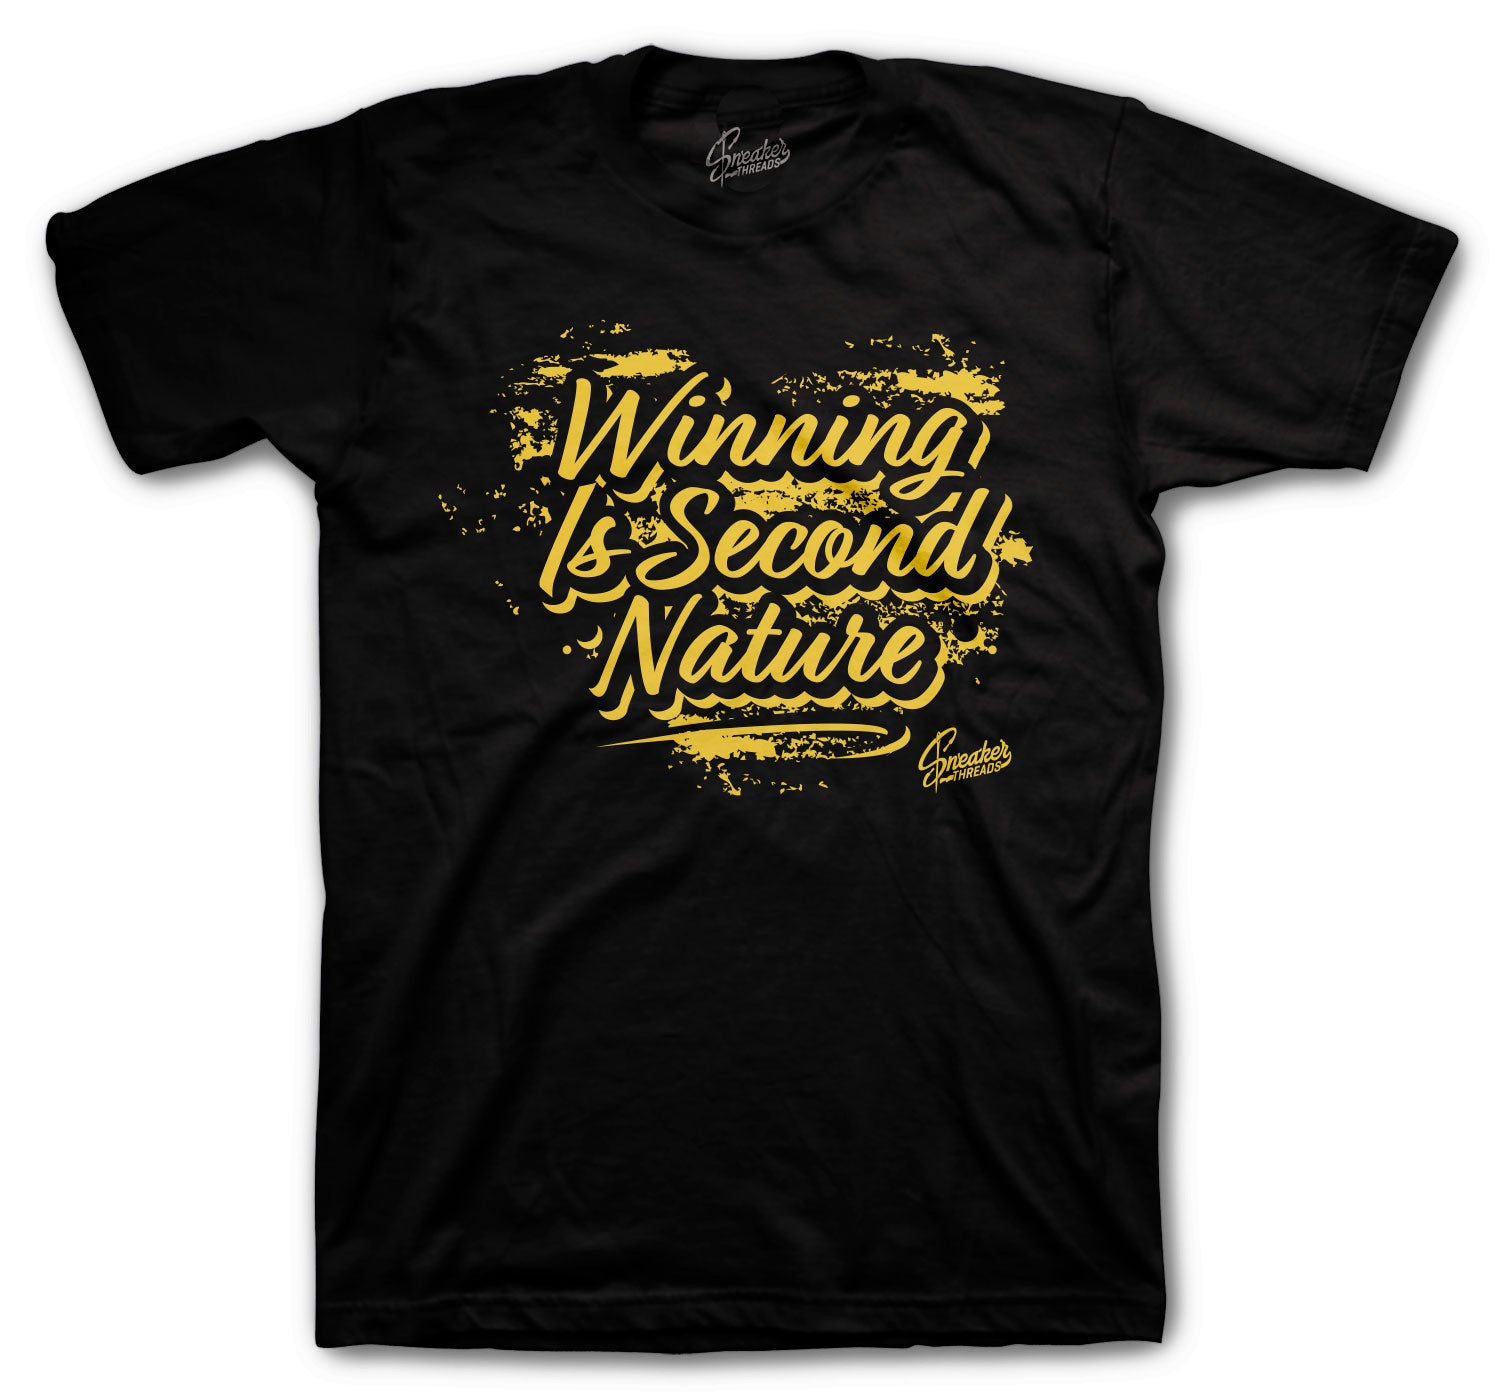 Shirts for guys matching with mens Jordan 1 black gold sneakers